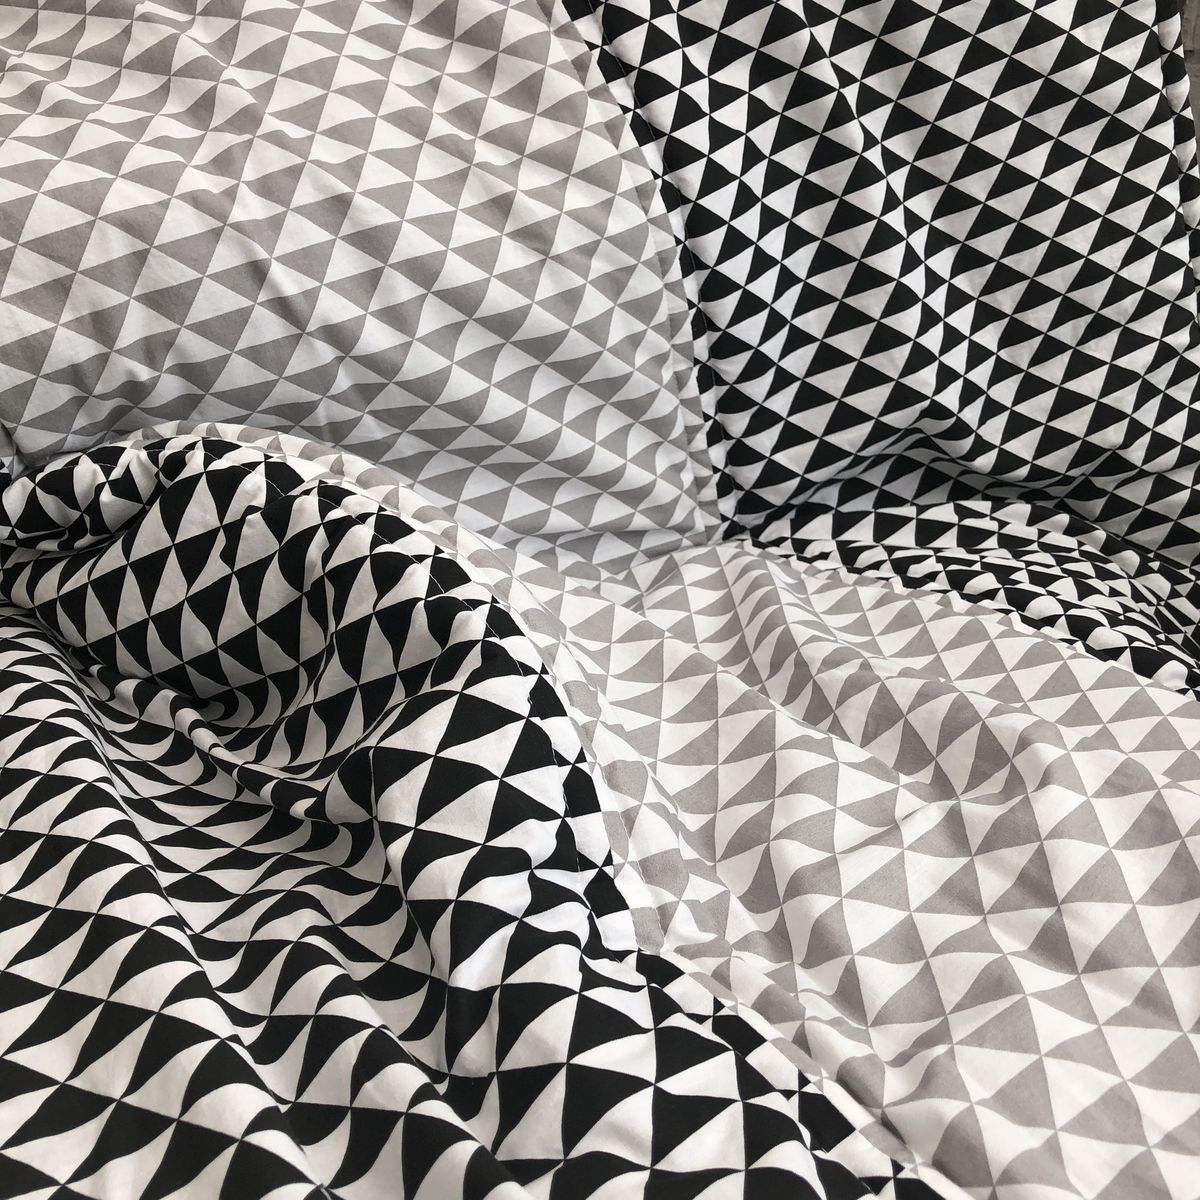 Contemporary geometric patterned quilted baby play mat, monochrome, grey - product images  of